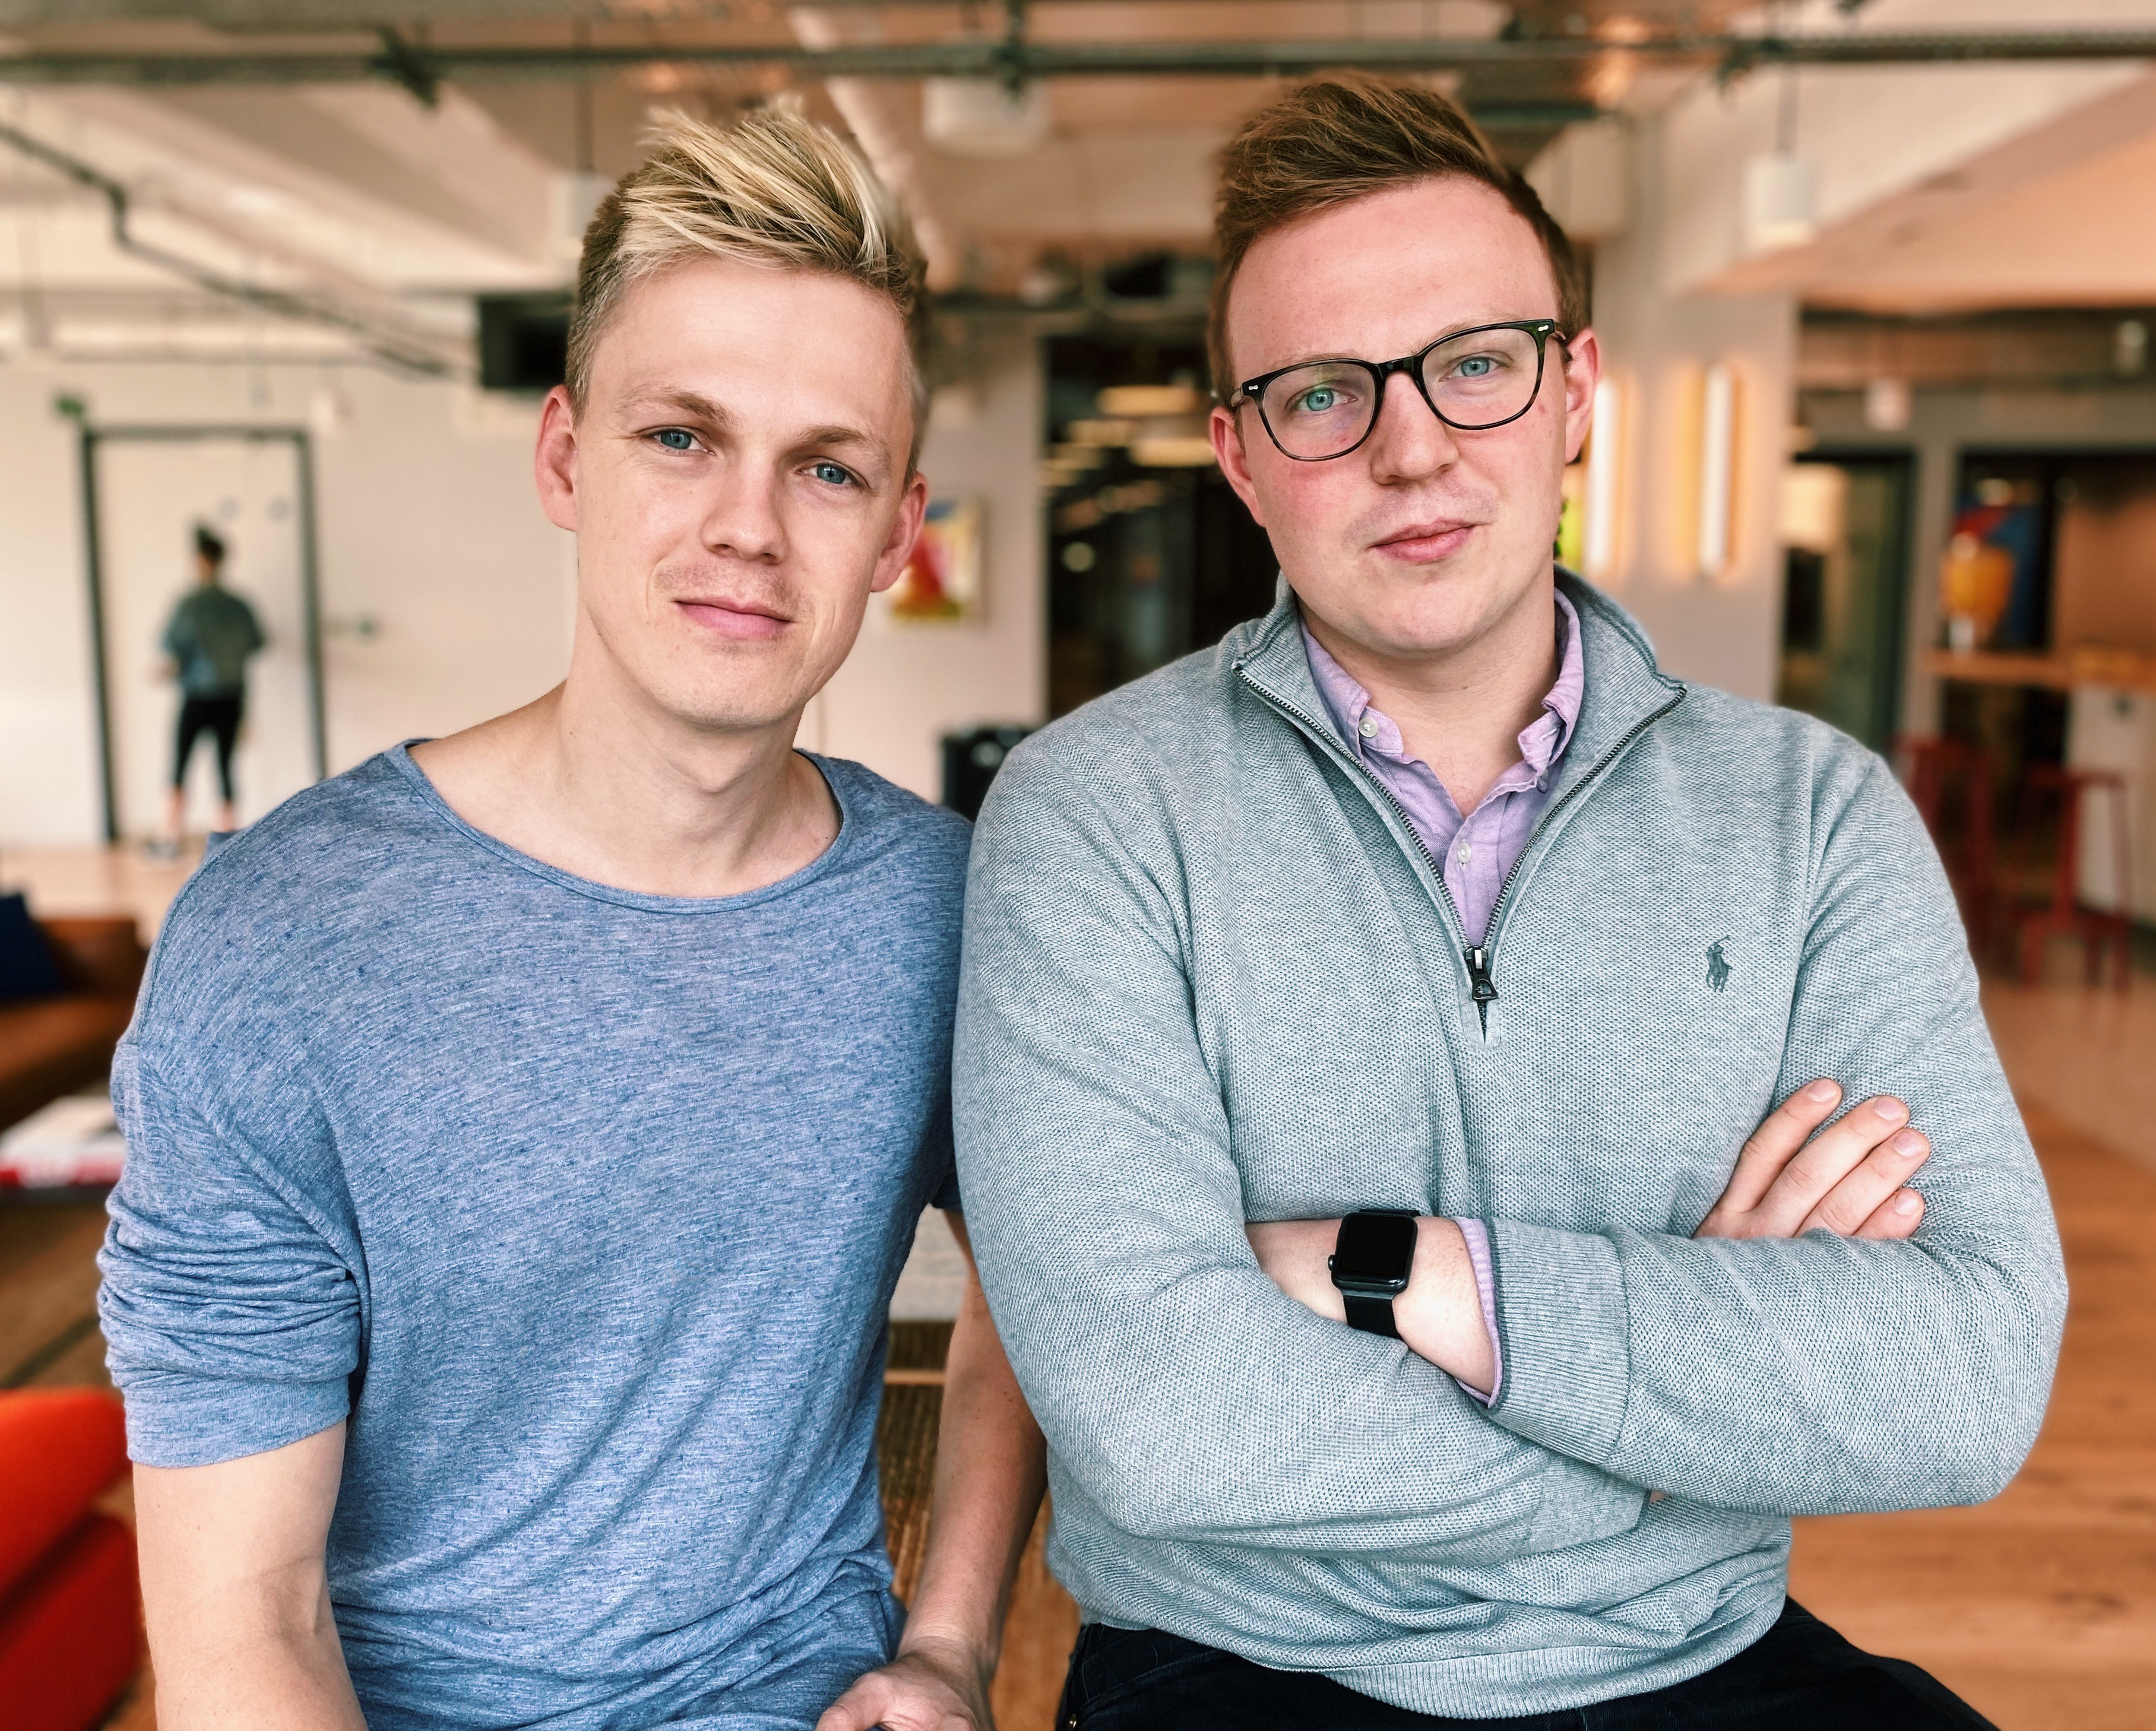 Meet the company helping to build trust in influencer marketing